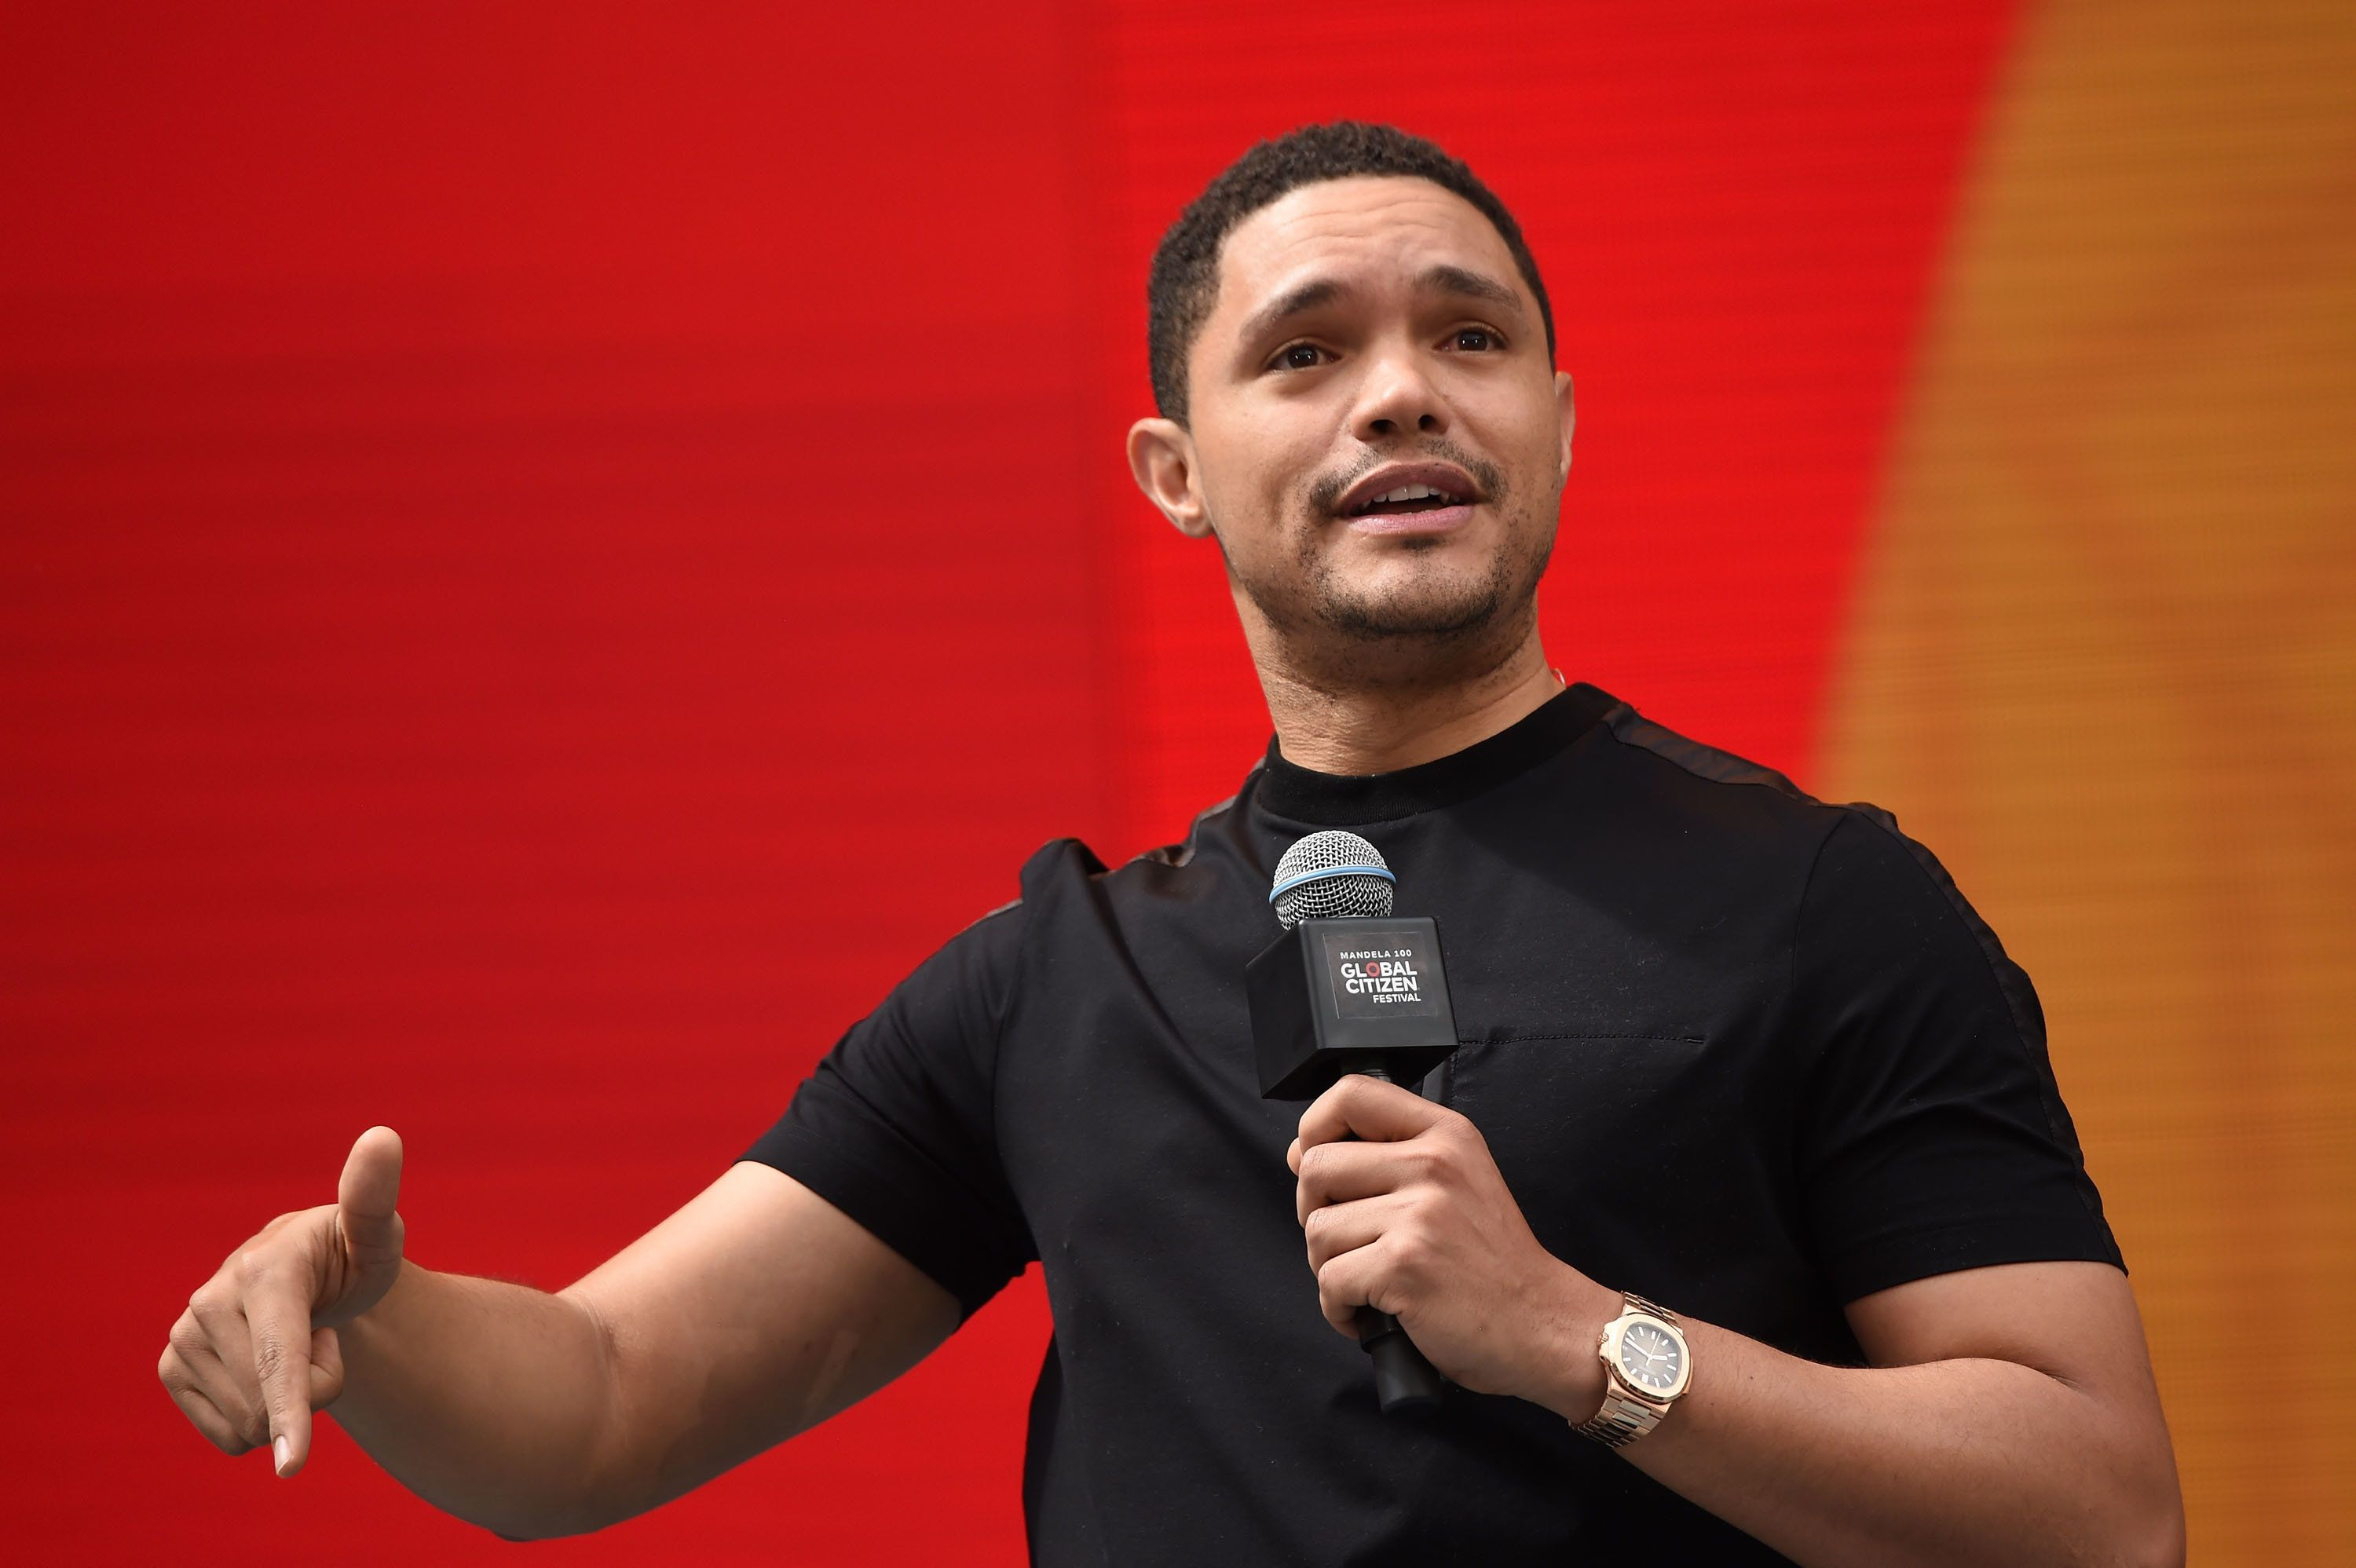 Trevor Noah Has Been Silenced... But It's Not What You